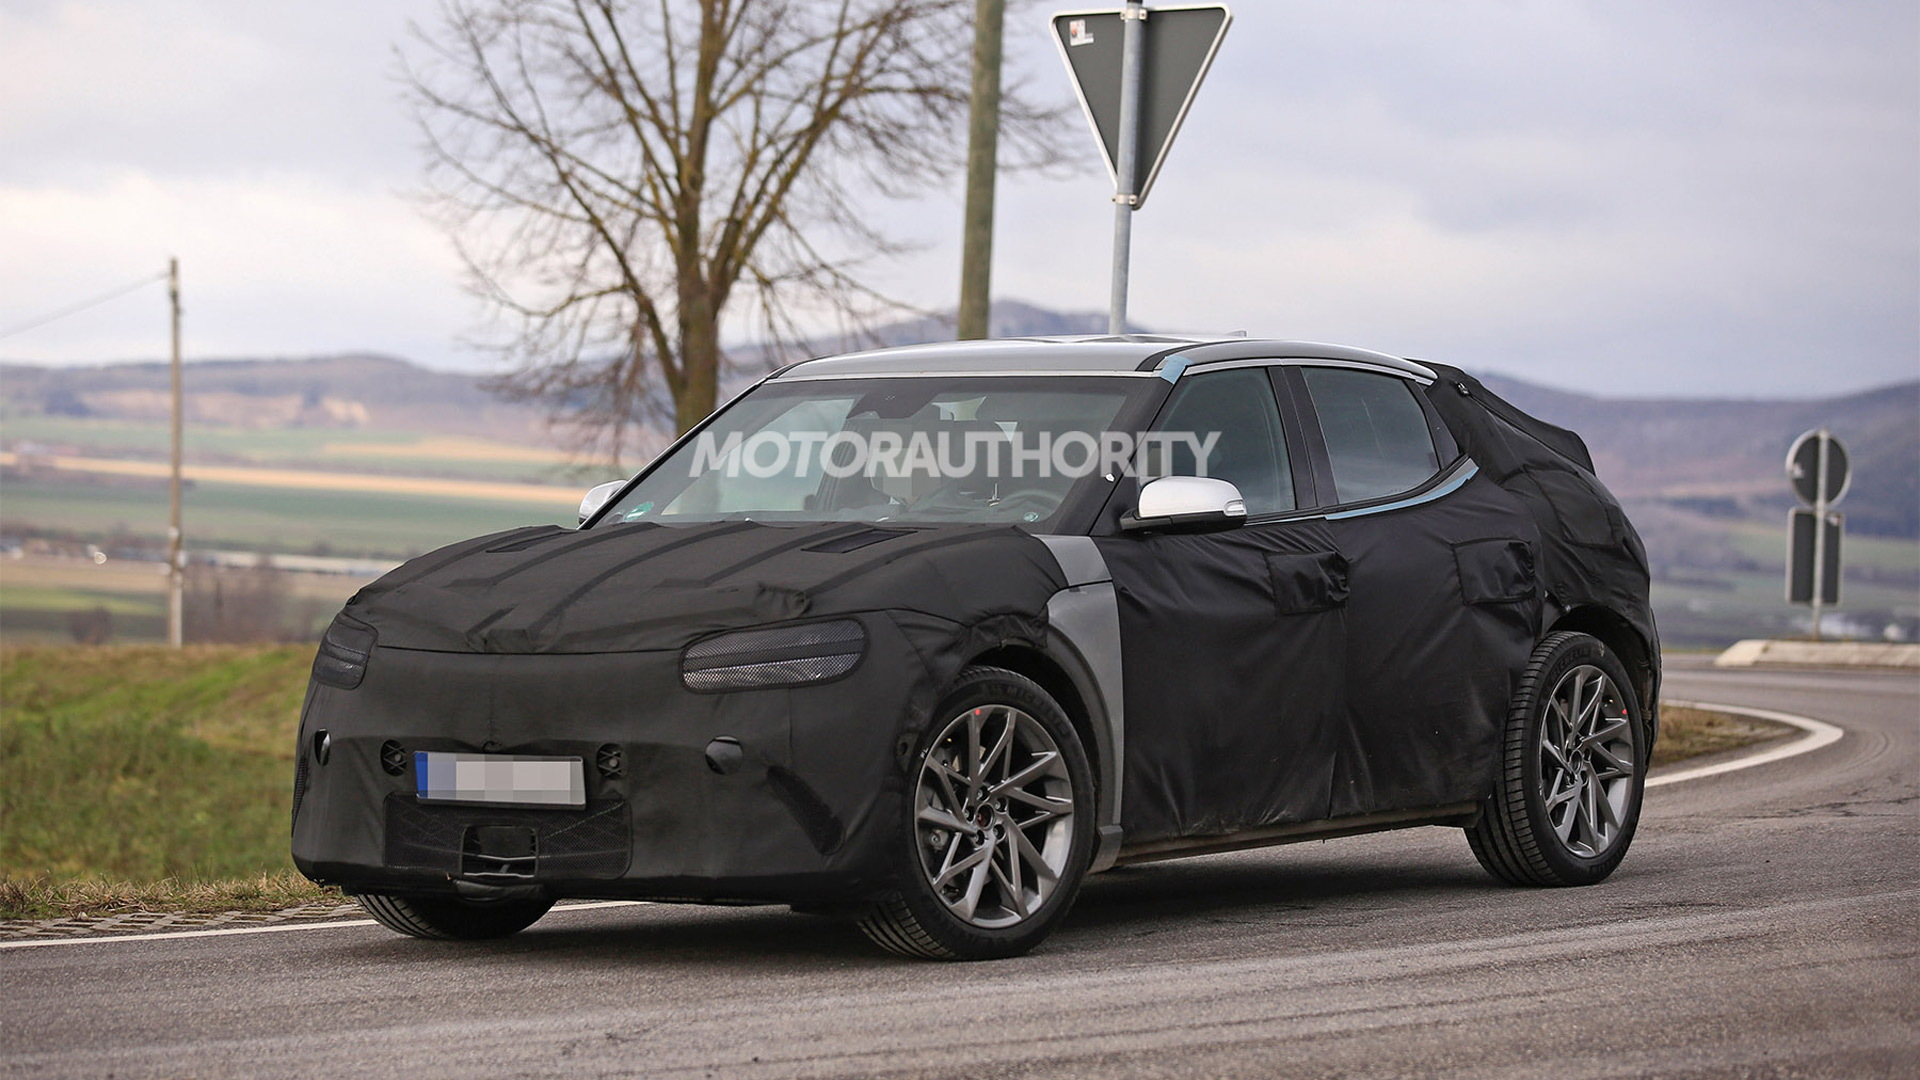 2022 Genesis JW electric crossover SUV spy shots - Photo credit: S. Baldauf/SB-Medien